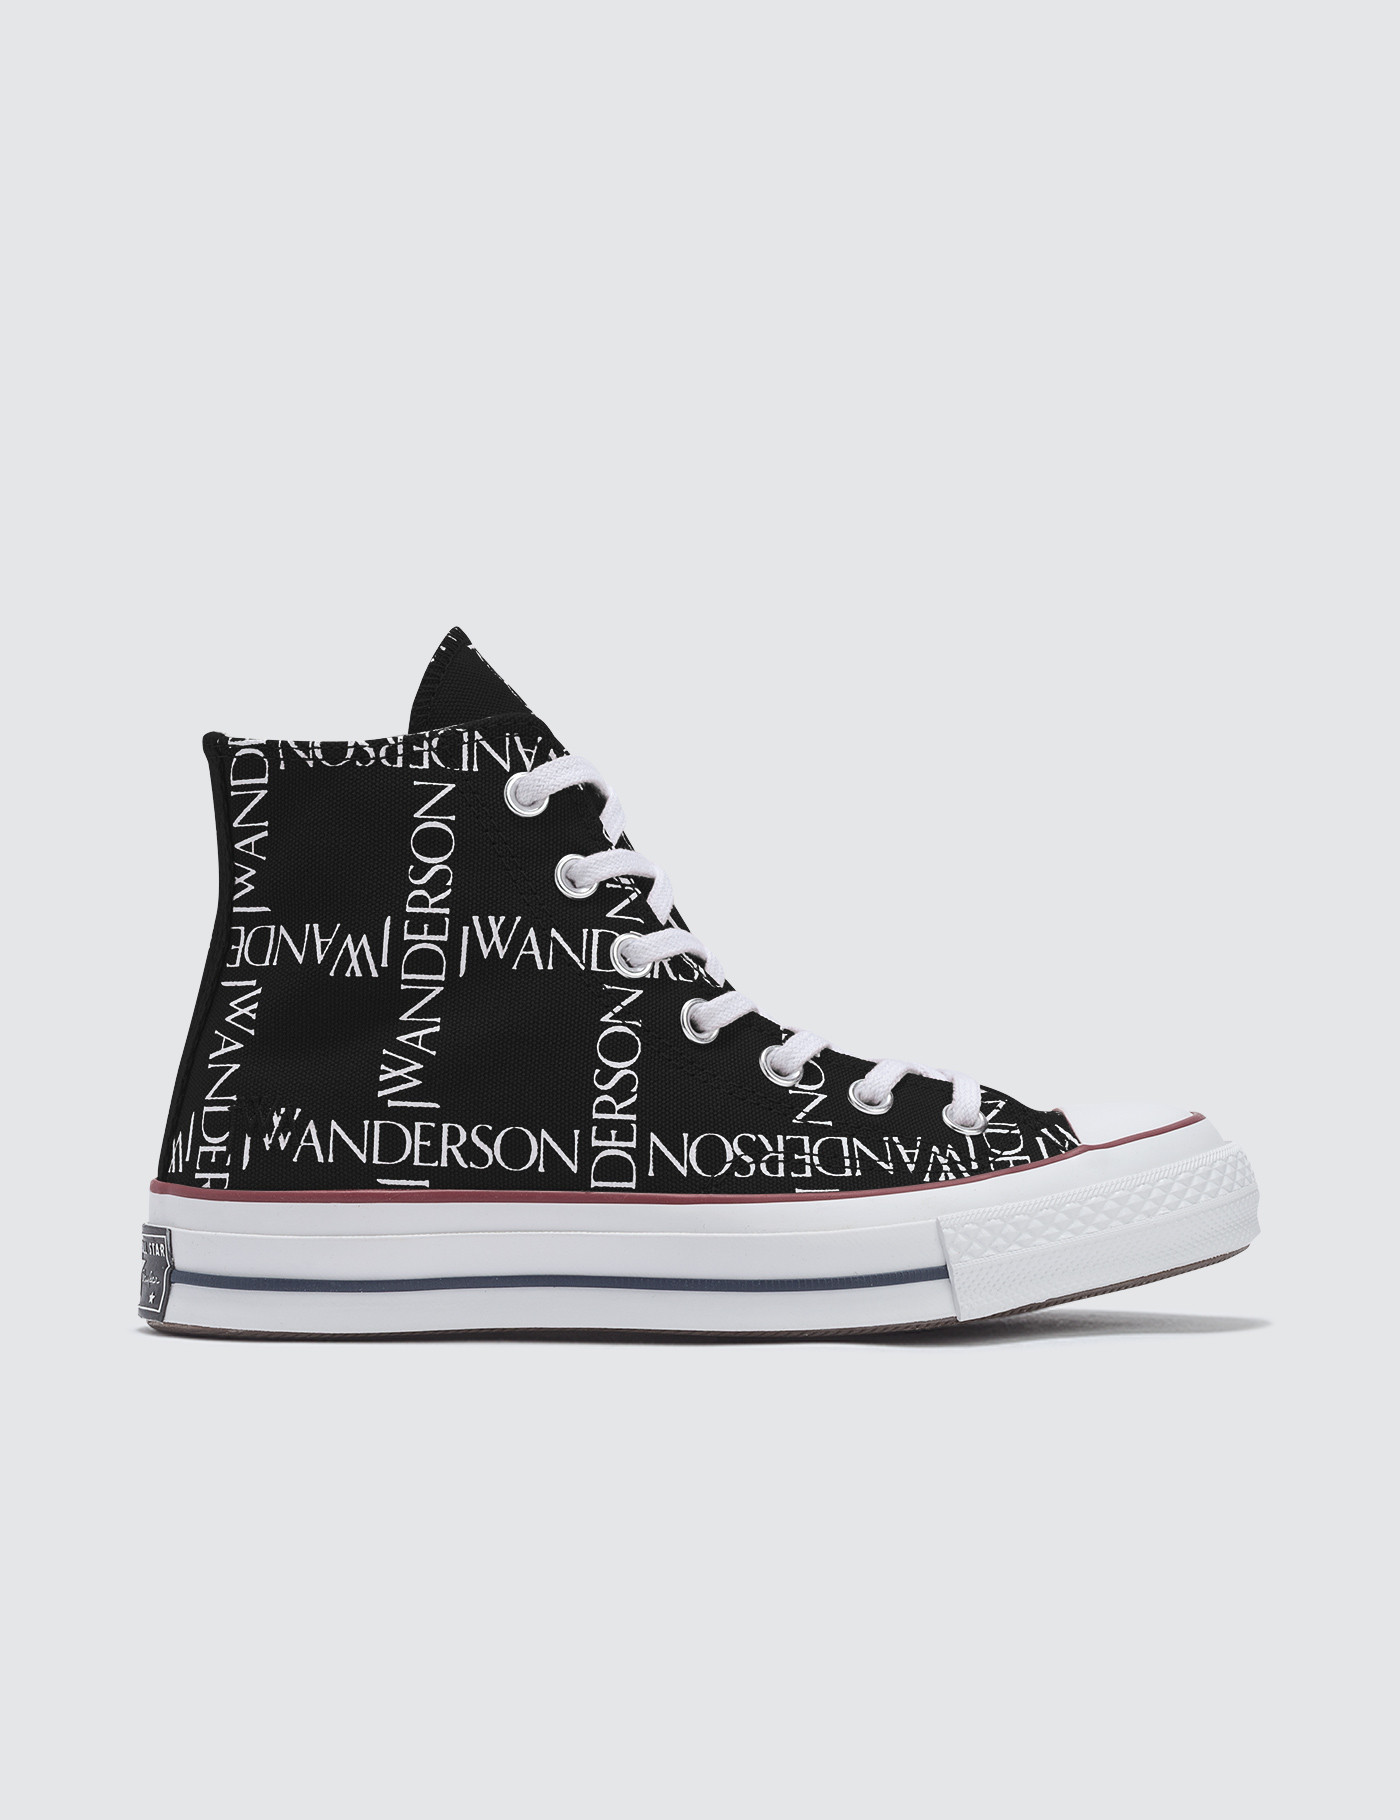 d79ca1f1d417 Buy Original Converse x JWA Grid Chuck 70 Hi at Indonesia